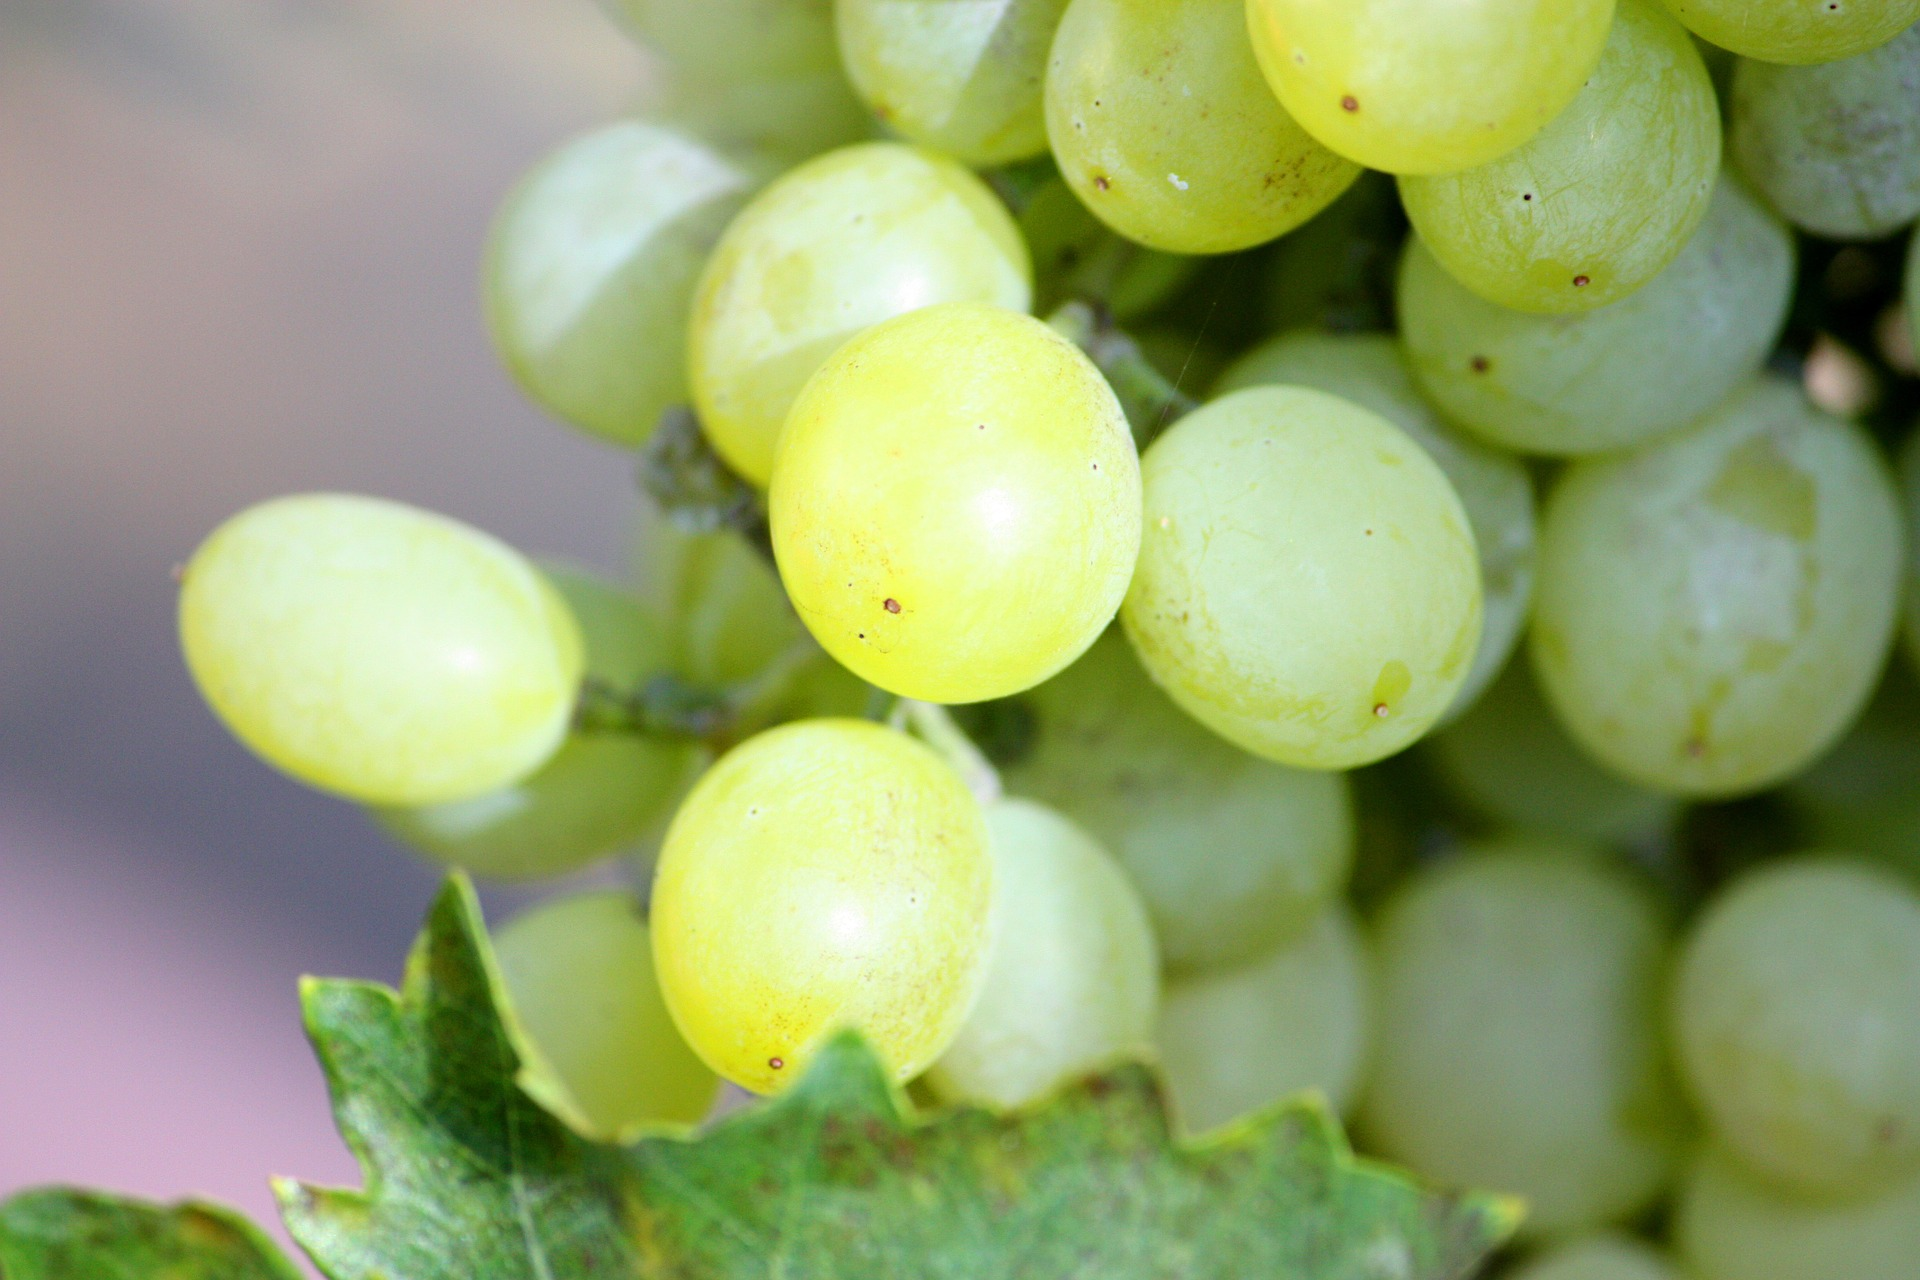 Champagne vineyard grapes